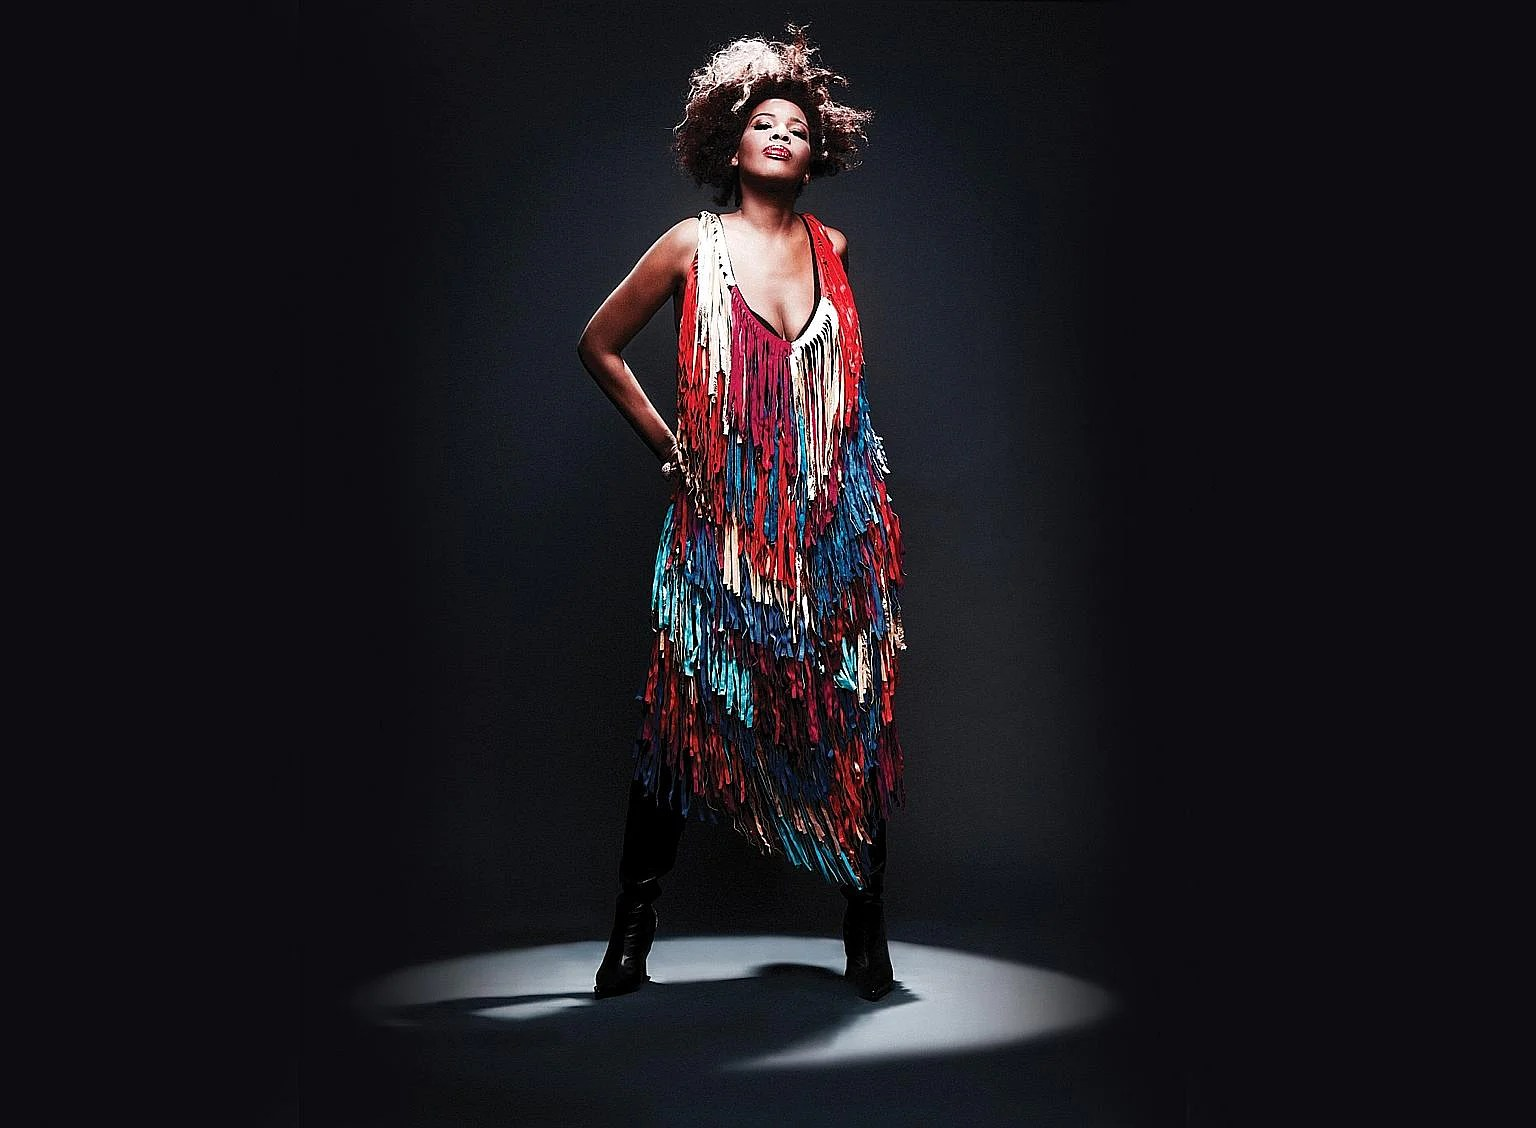 Macy Gray will be performing at the Podium Lounge on Sunday. Scottish DJ Calvin Harris will bring his music to the F1 on Sunday. DJ Big Ali performed at Amber Lounge last year. It rained on Robbie Williams' parade, but he took it in his stride. Pop p